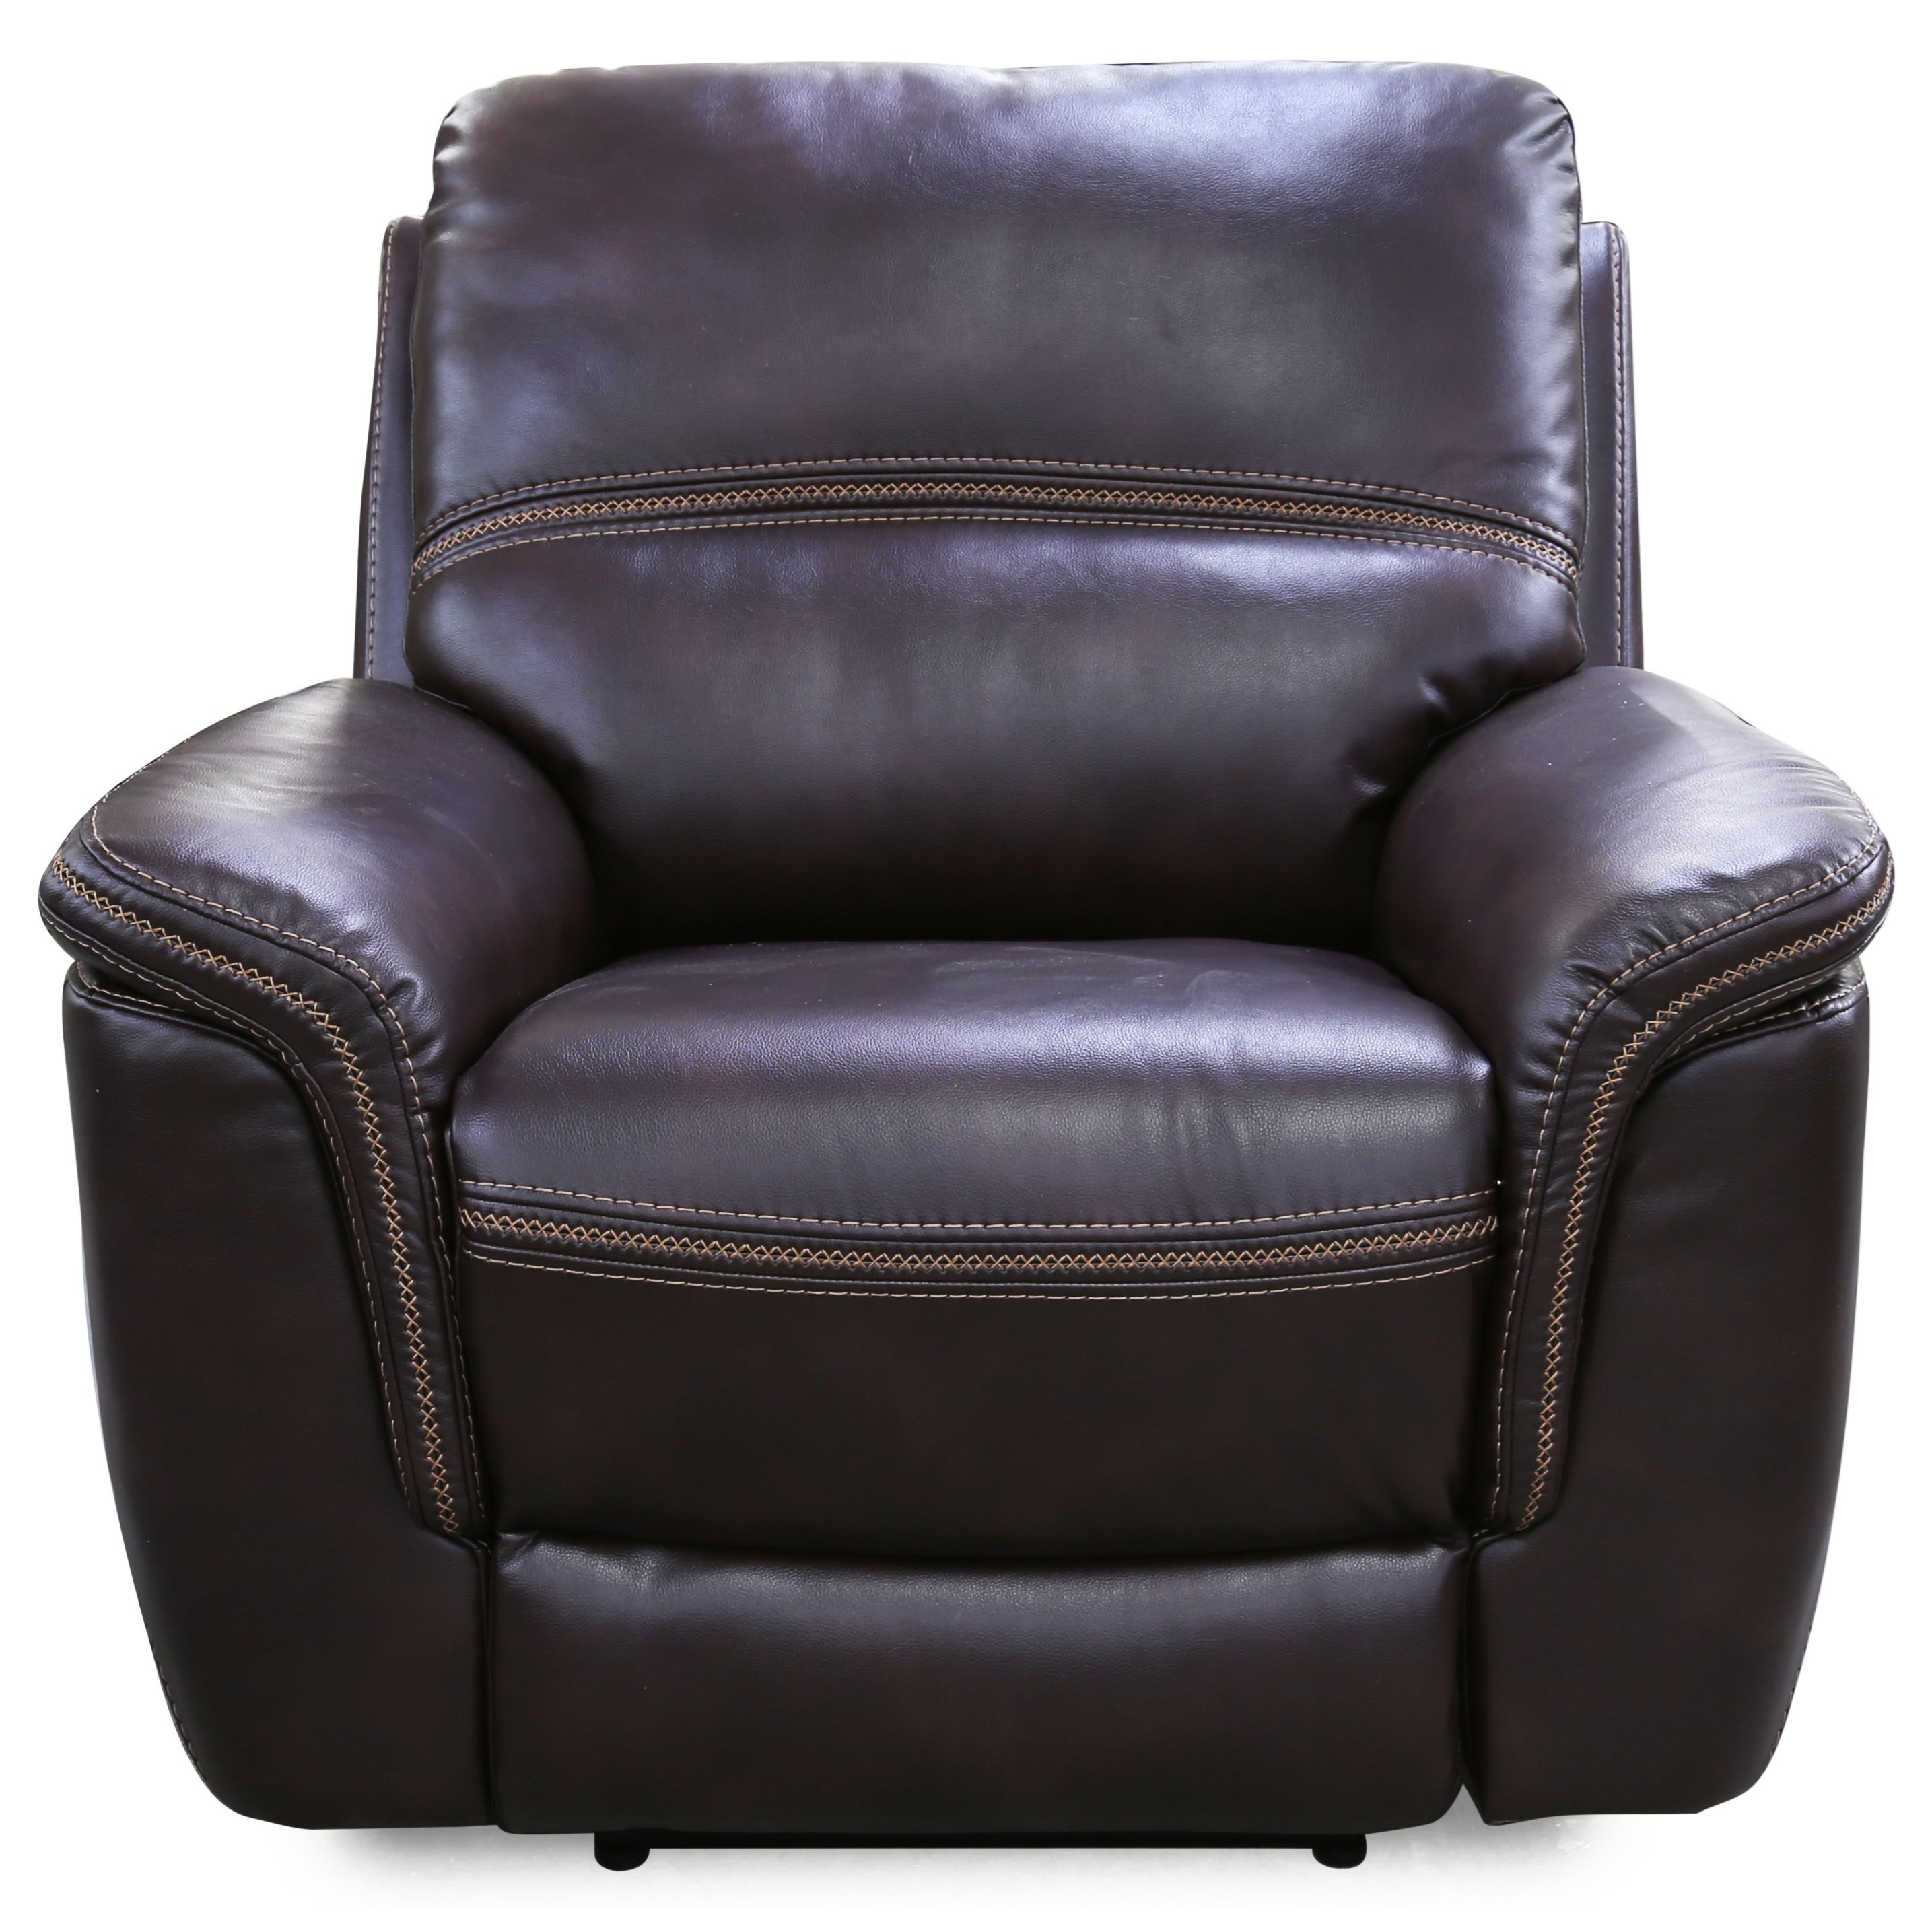 Cheers Sofa Townsend Power Recliner - Item Number: 5571-L1-1EHZ 35749